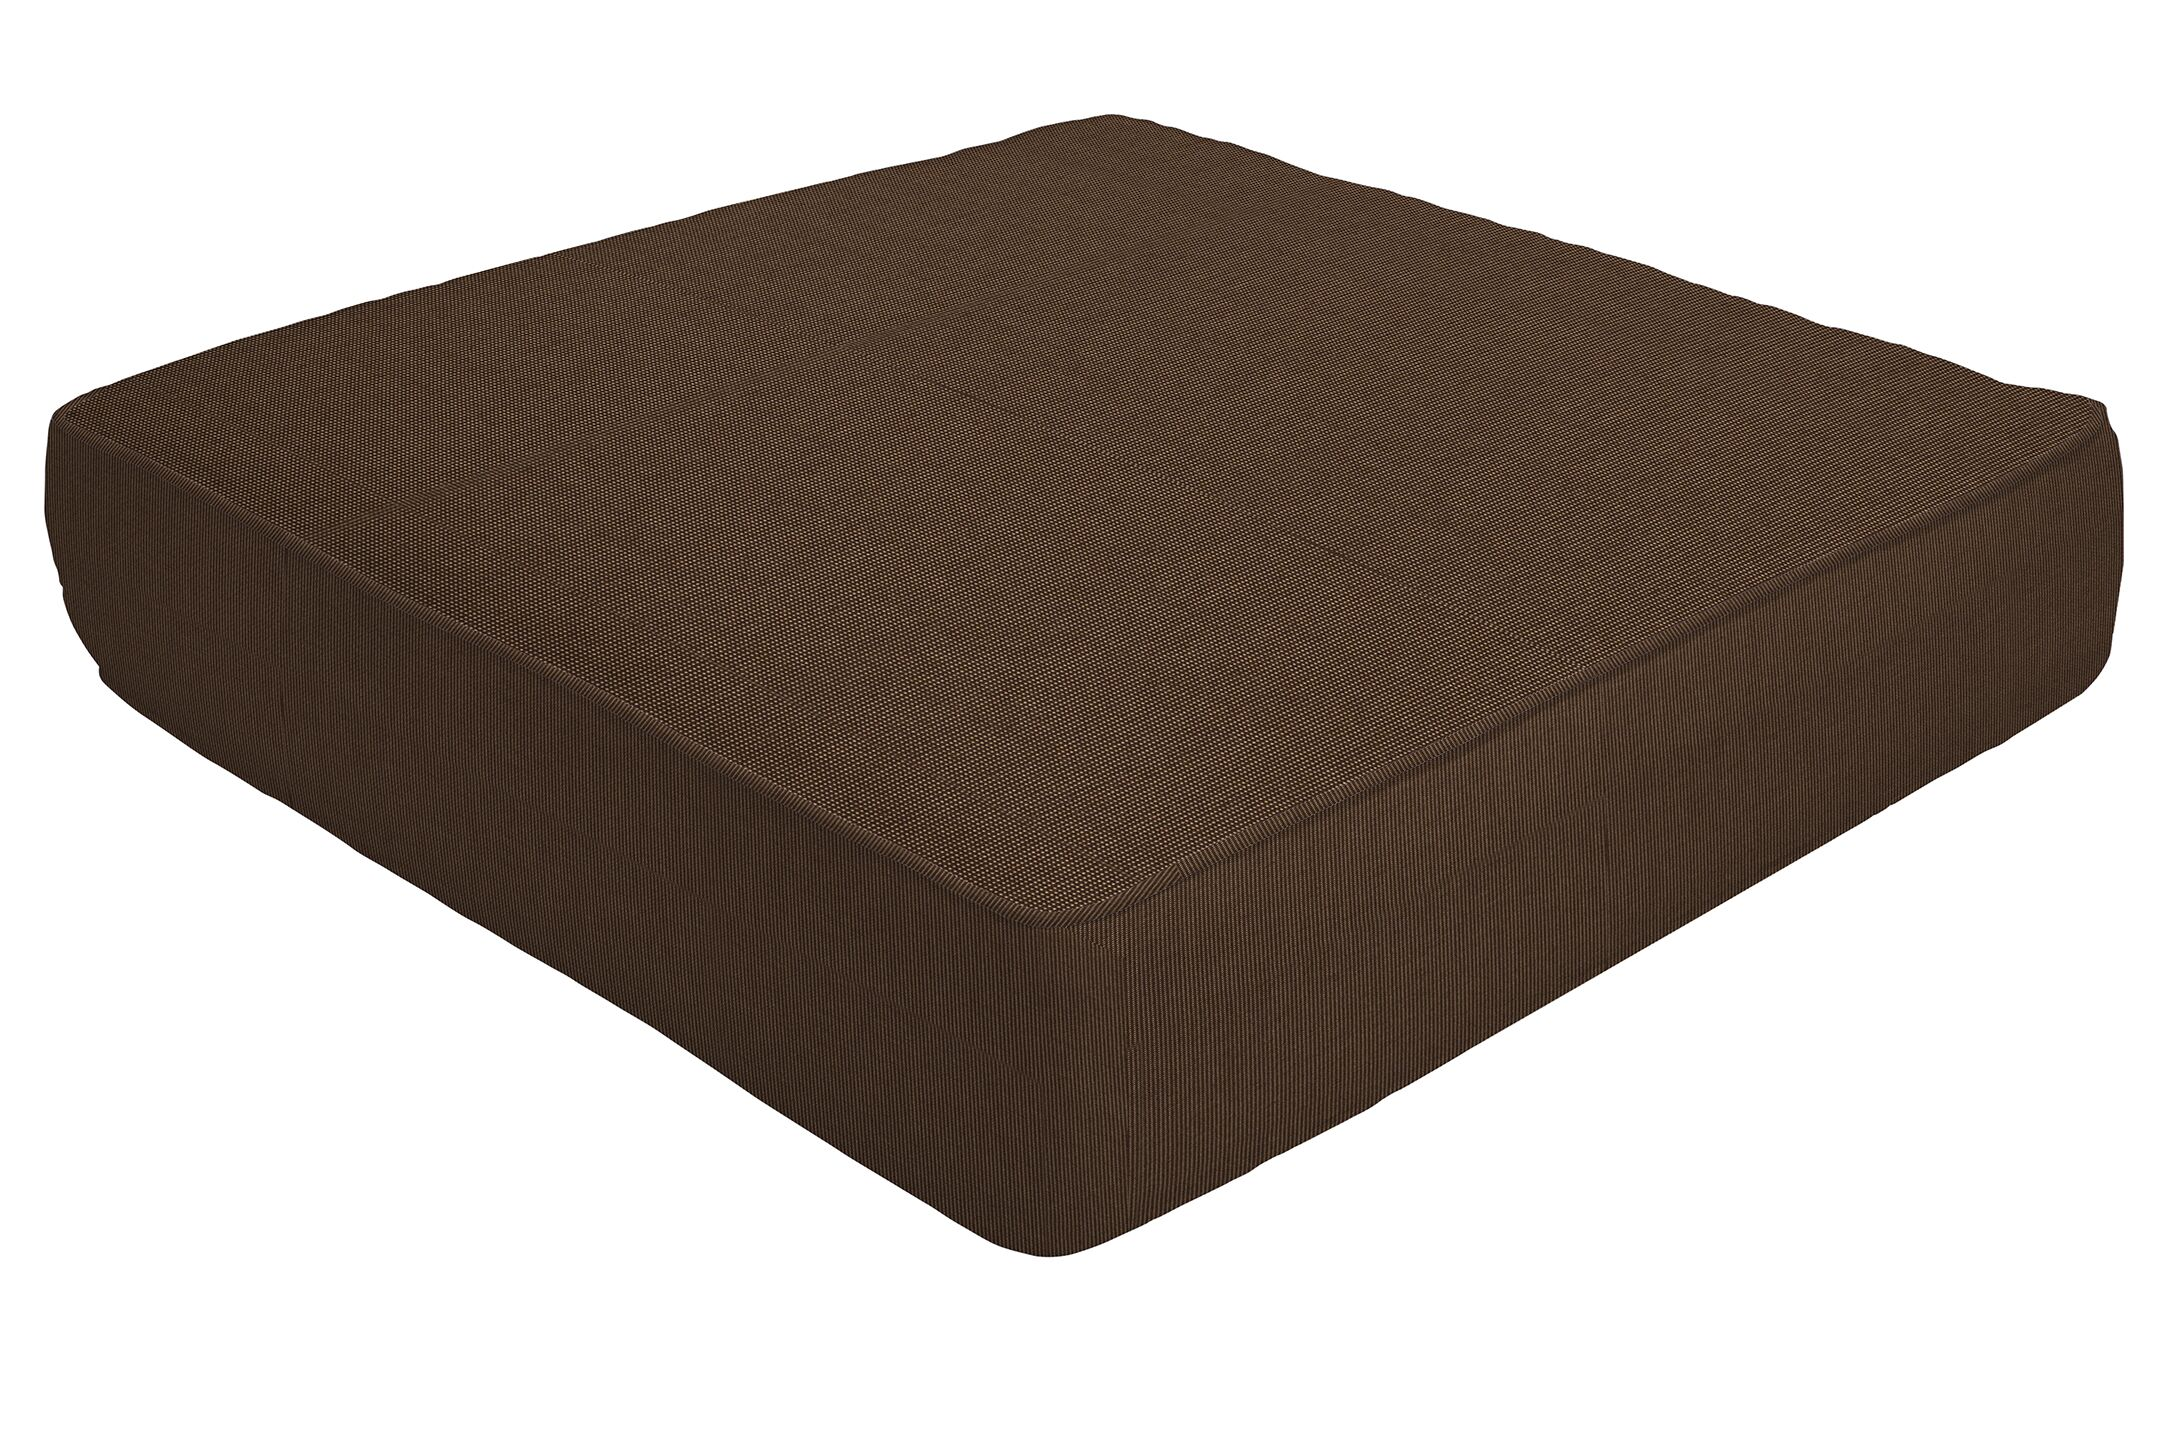 Double Piped Indoor/Outdoor Sunbrella Ottoman Cushion Size: 5